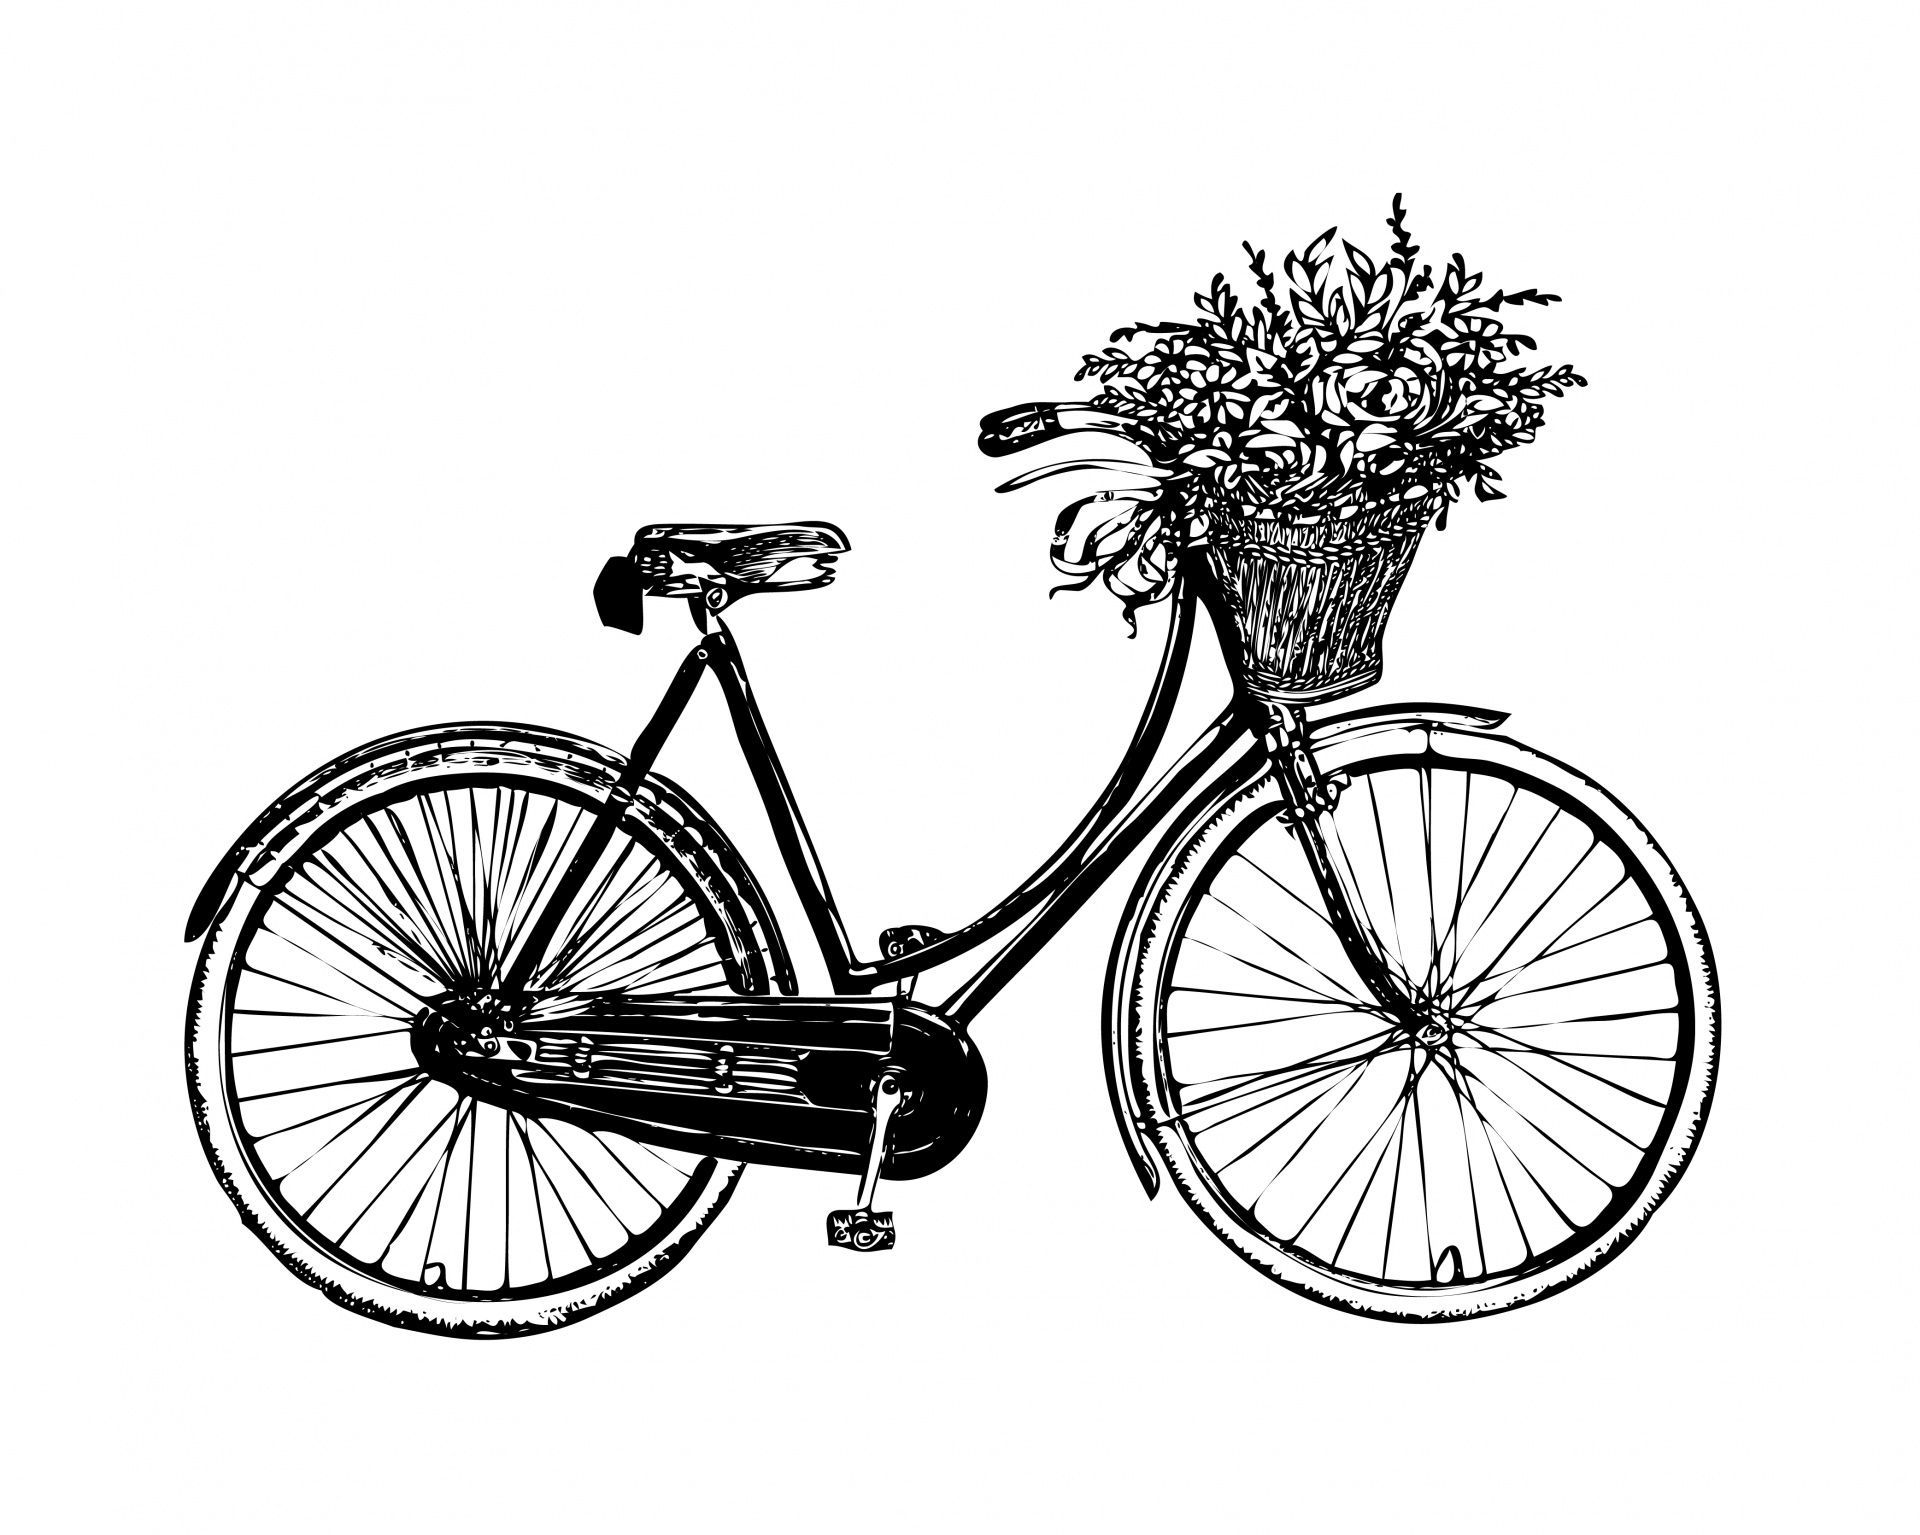 Clipart bike shabby chic. Bicycle flowers vintage free